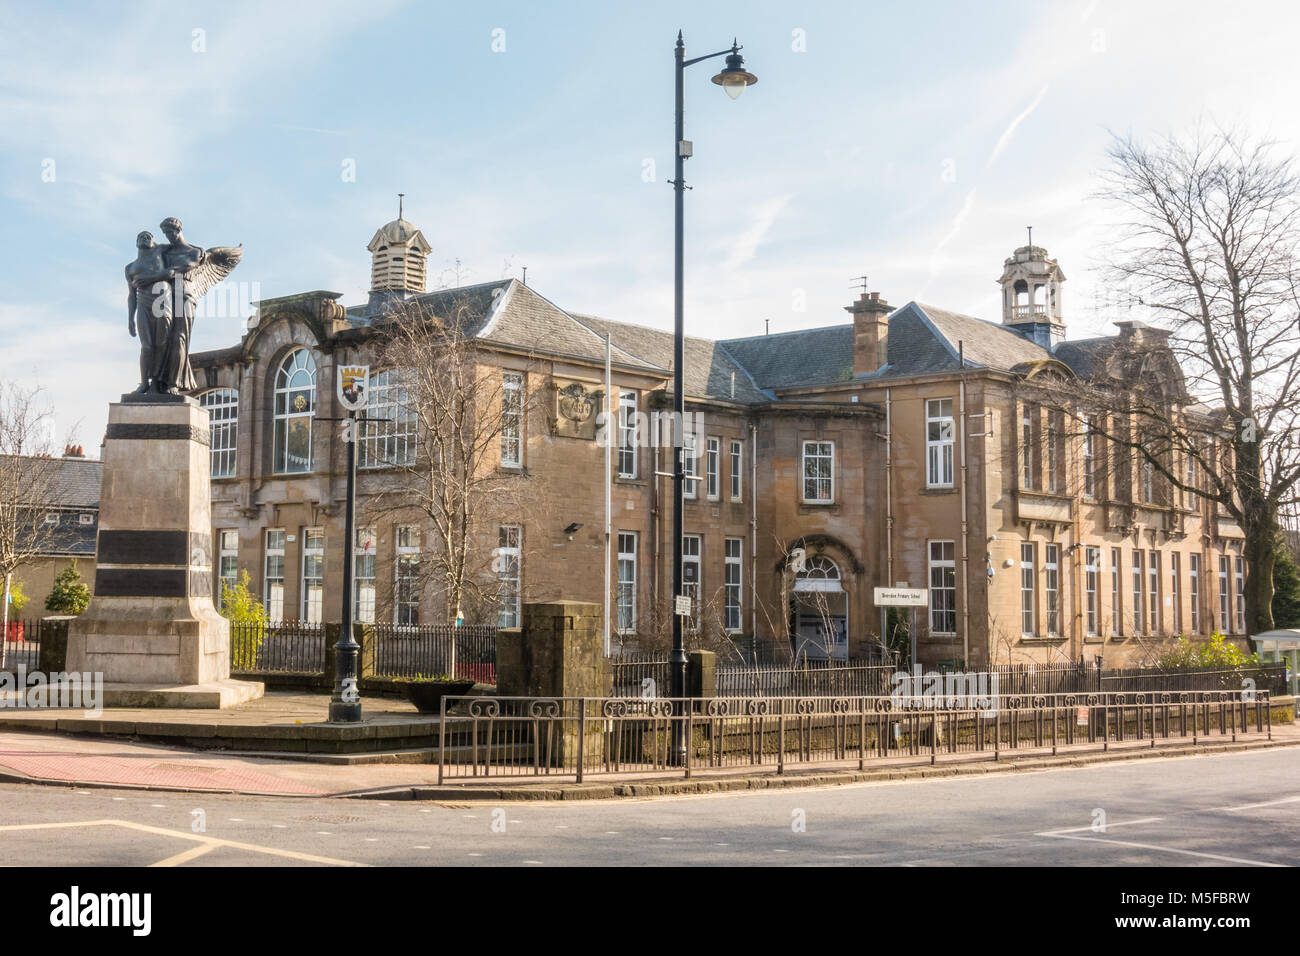 Bearsden primary school, Bearsden Cross, Scotland, Uk - Stock Image